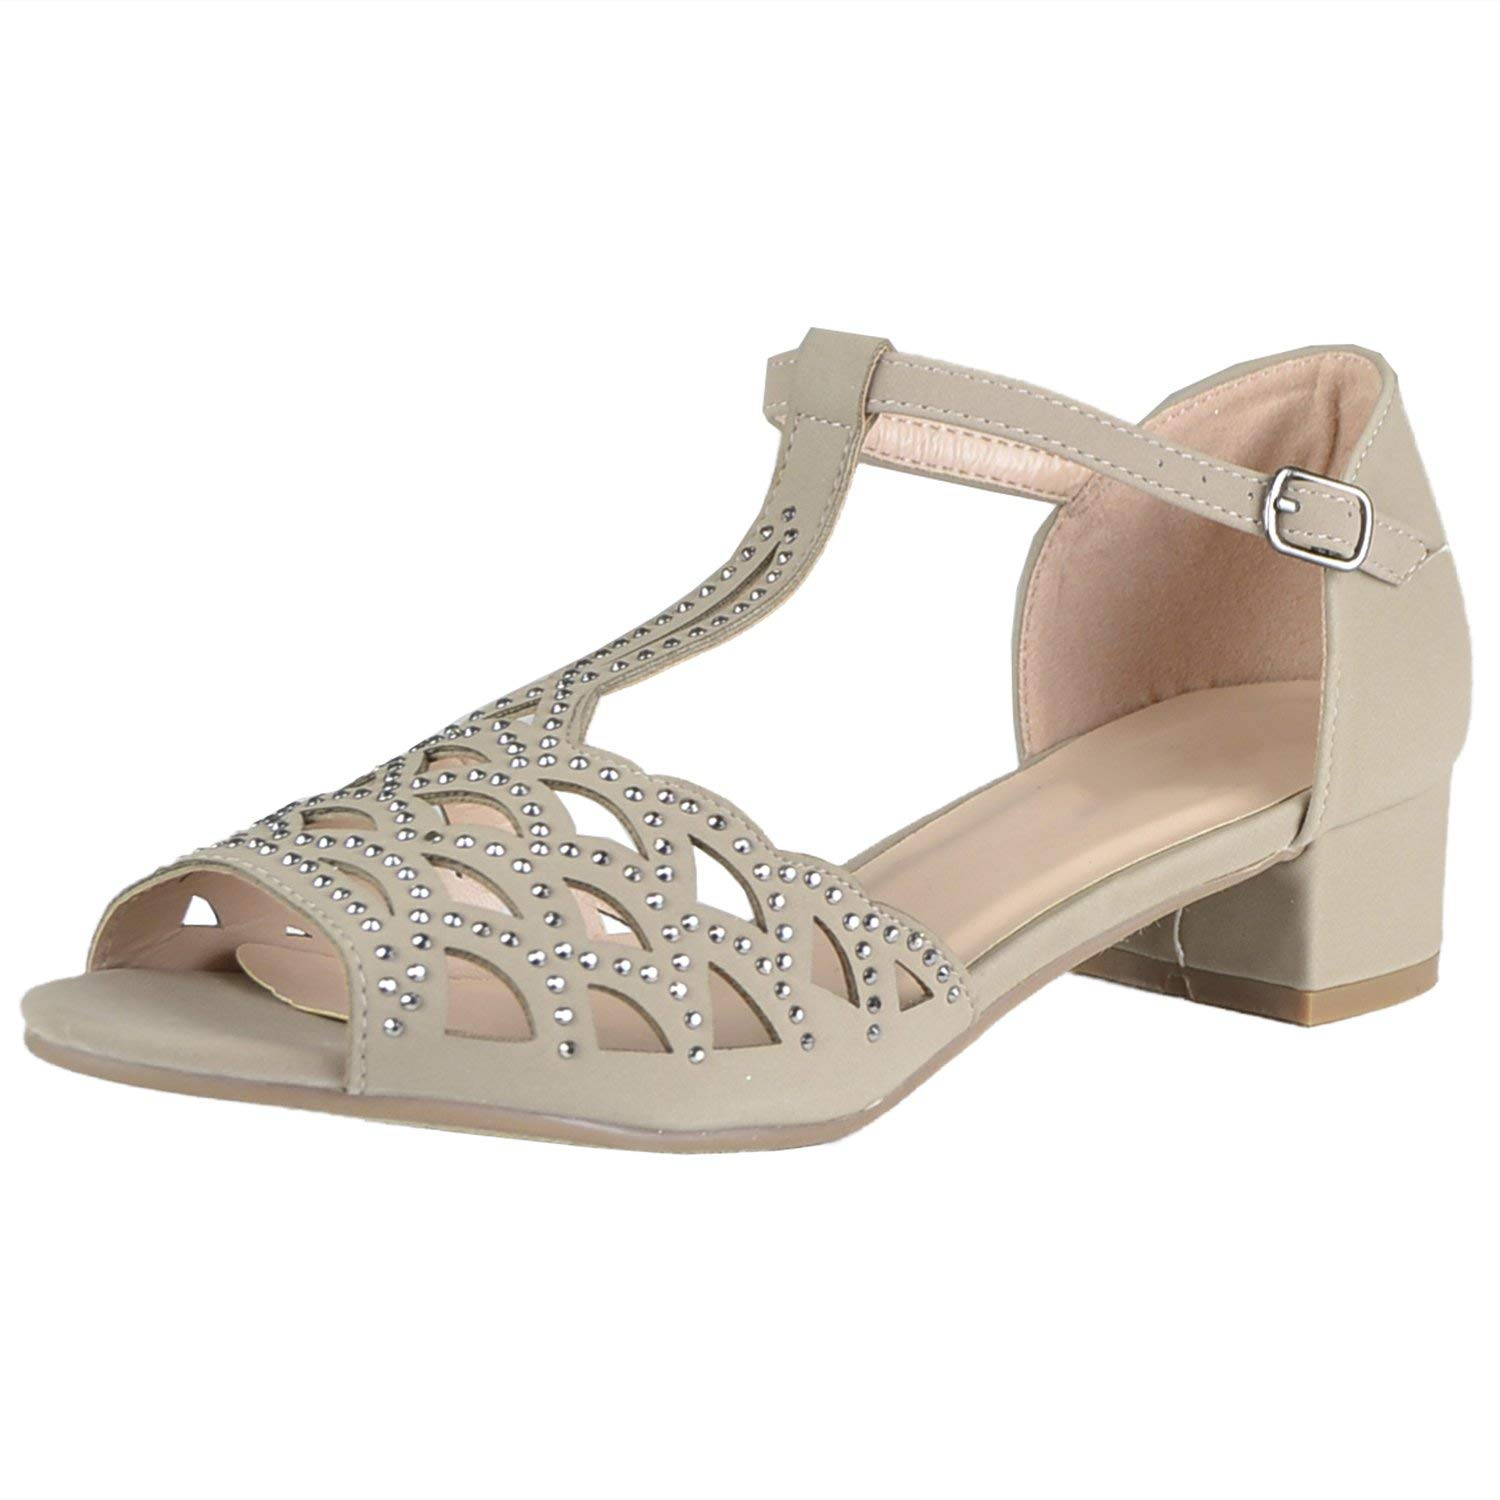 BDshoes Dream Feather Rhinestone Low Heel Dress Shoe Sandals for Little Girl Assorted Colors Black White Pink Taupe